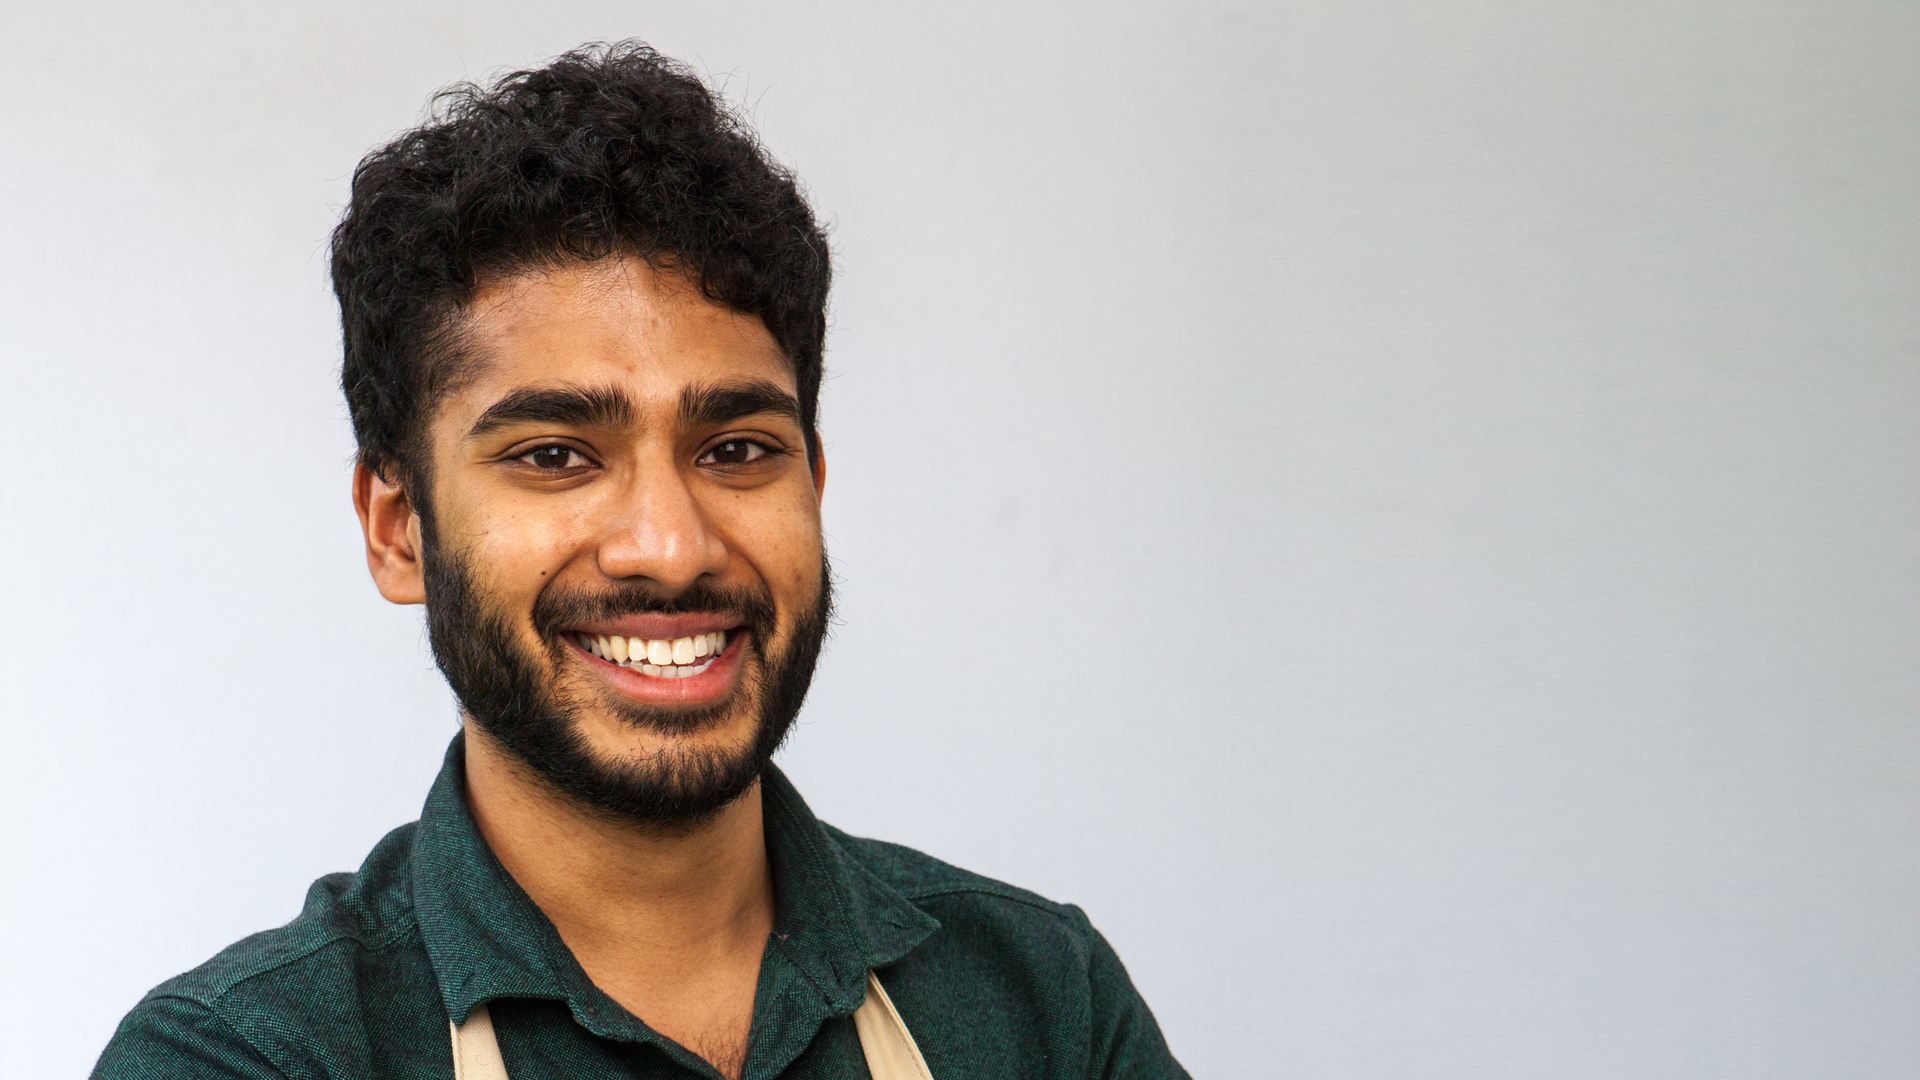 Tamal on the Great British Baking Show